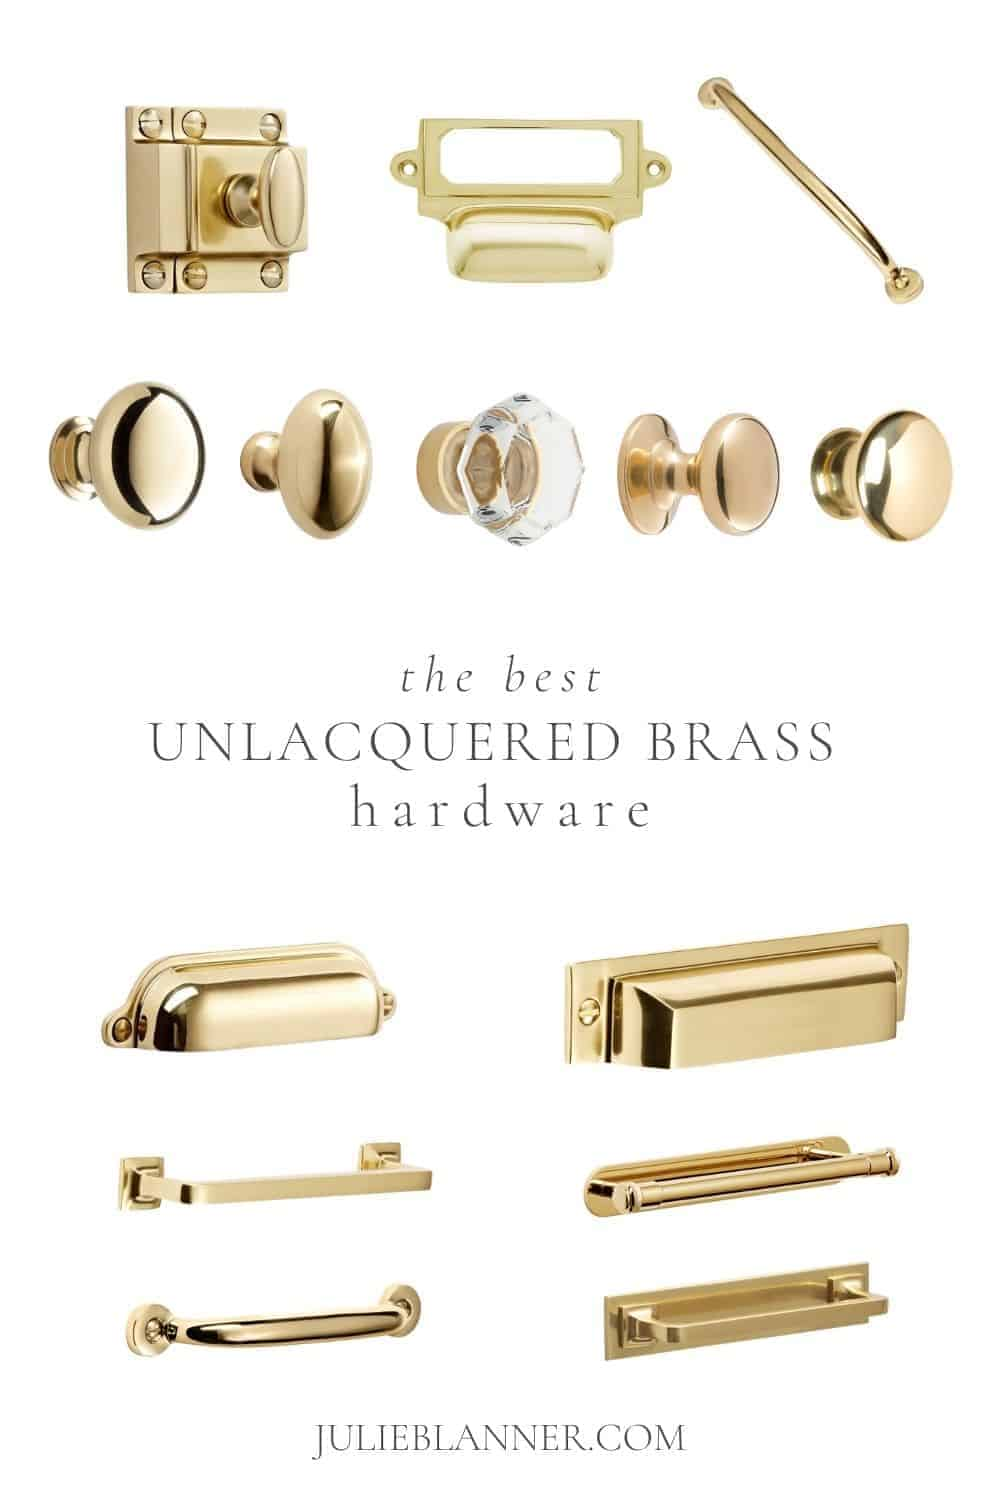 graphic of unlacquered brass pulls, locks, and knobs